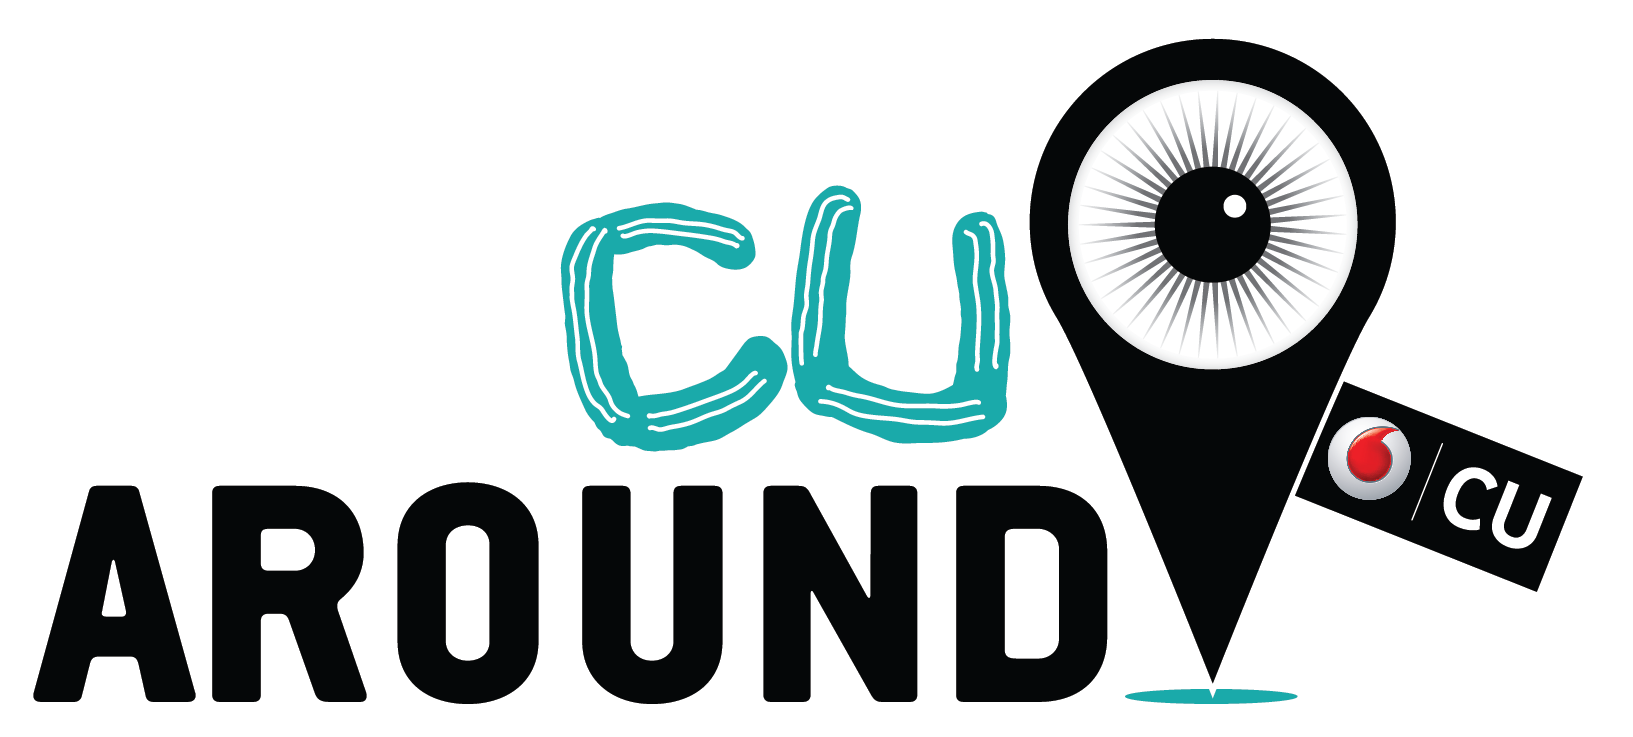 CU_around-white